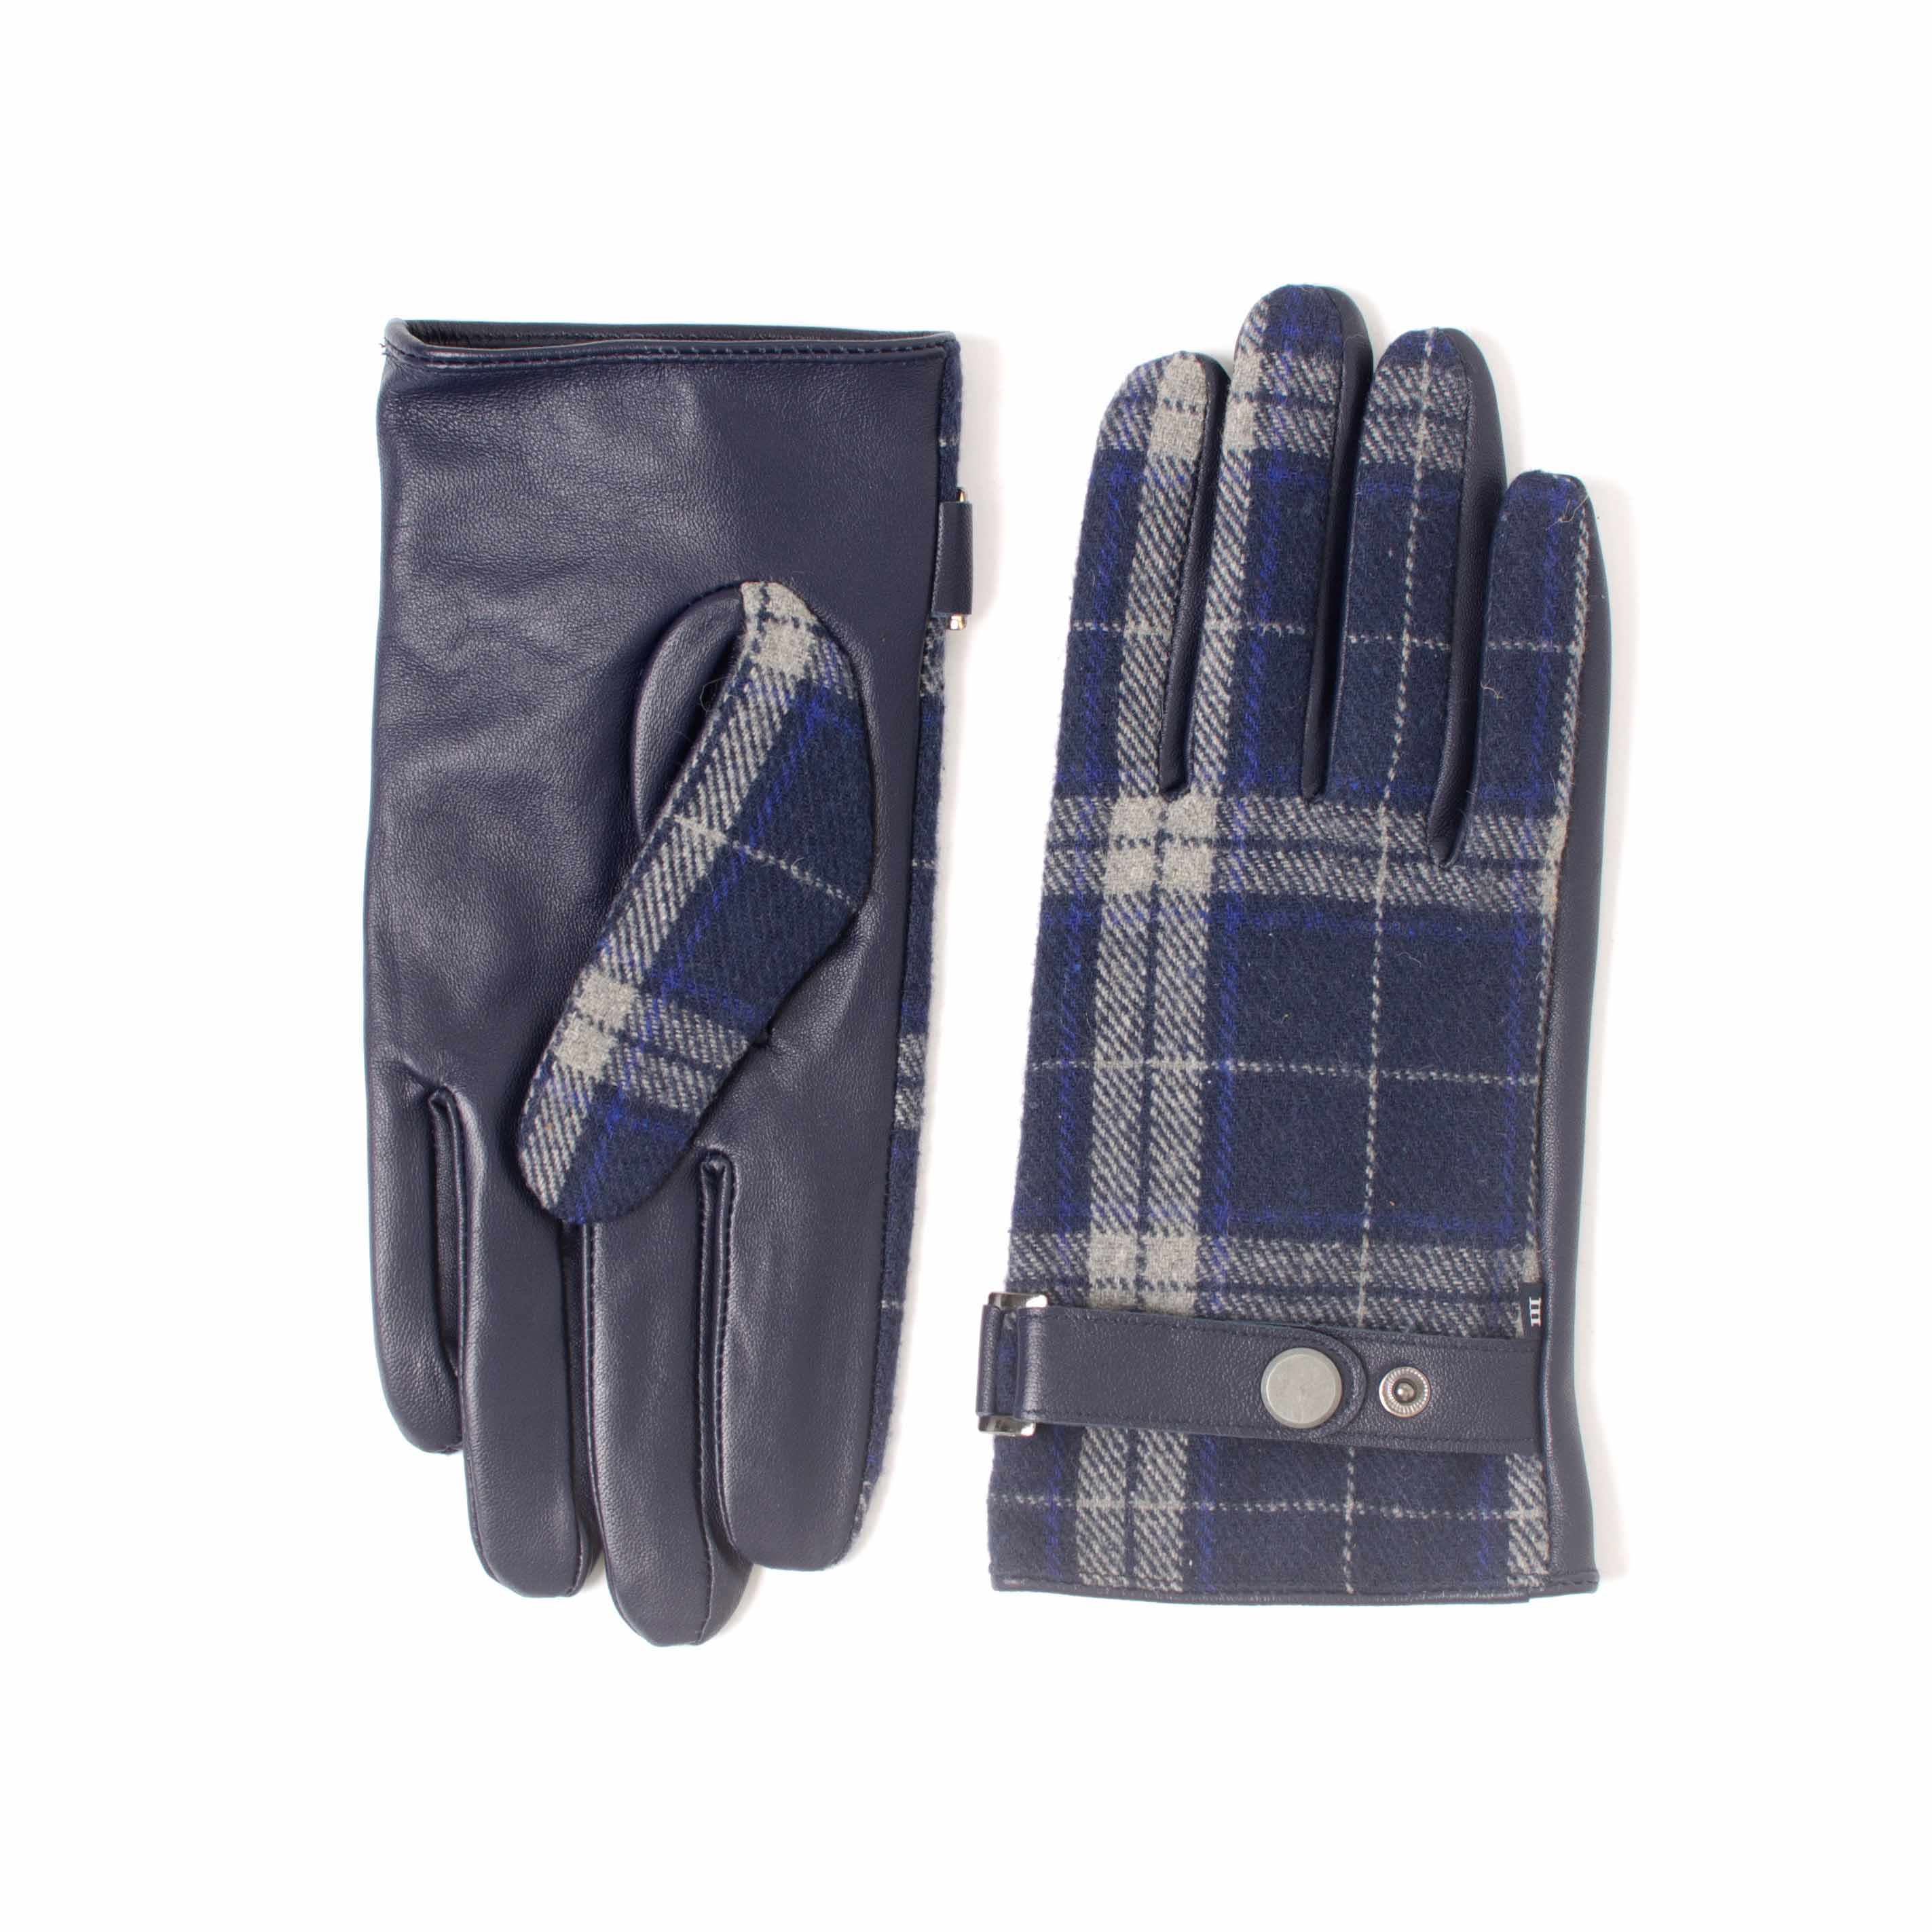 EUAN | Black leather and fabric glove with check pattern